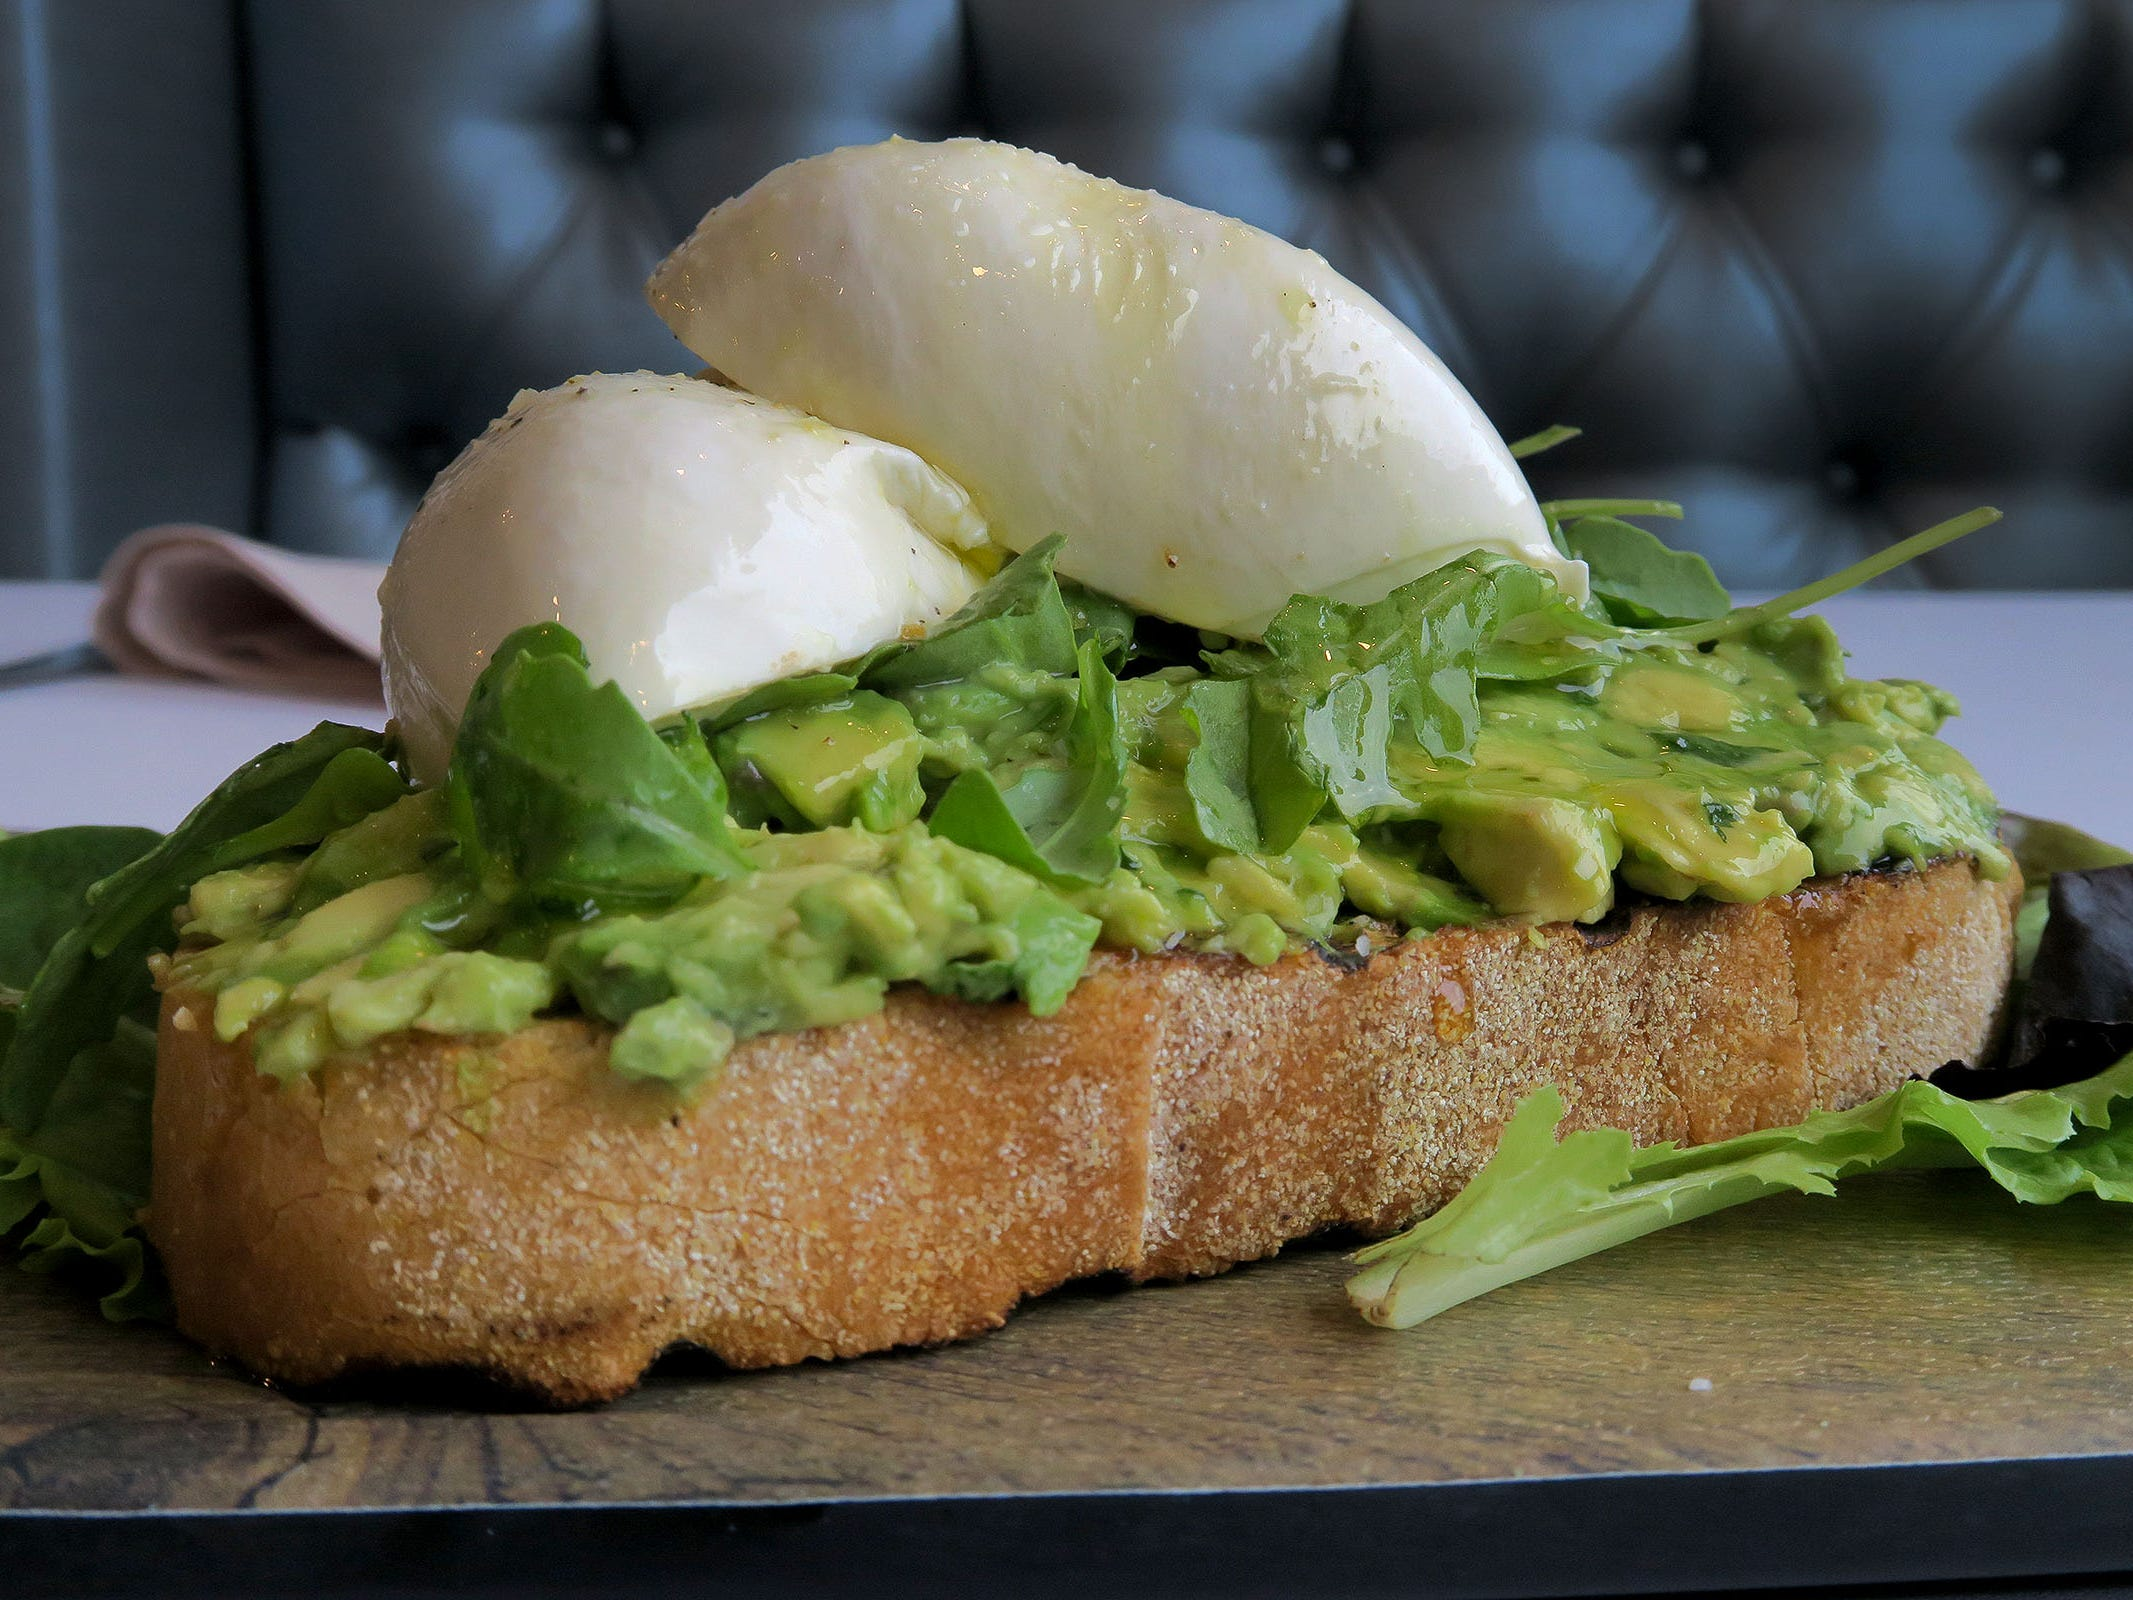 """The Avocado Toast w/ Burrata from the lunch menu at """"Caneda's White Rooster,"""" a year-old Toms River-based Cuban restaurant on Fischer Boulevard.  It features fresh avocado spread over buttered charred sourdough bread topped with burrata, honey and arugula."""